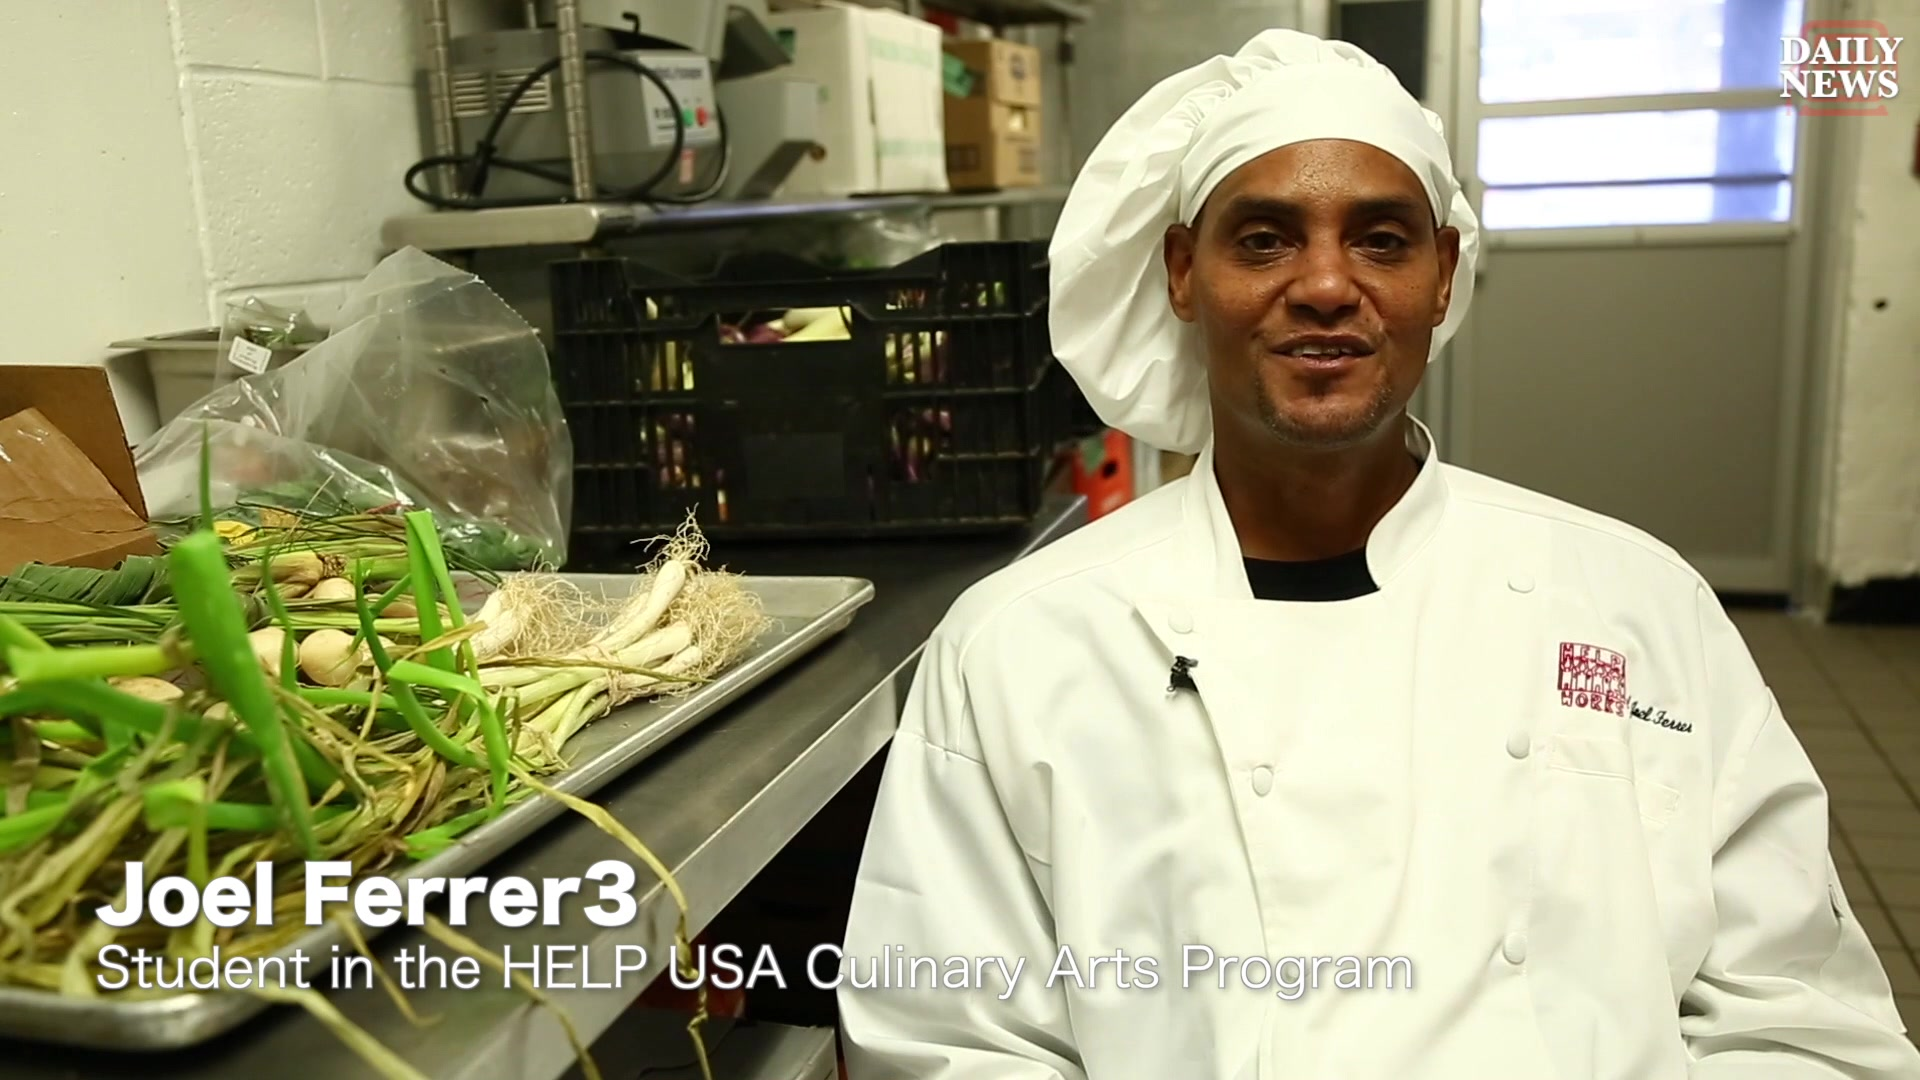 Culinary Arts Training Program Helps Homeless Cook Thanksgiving Meal